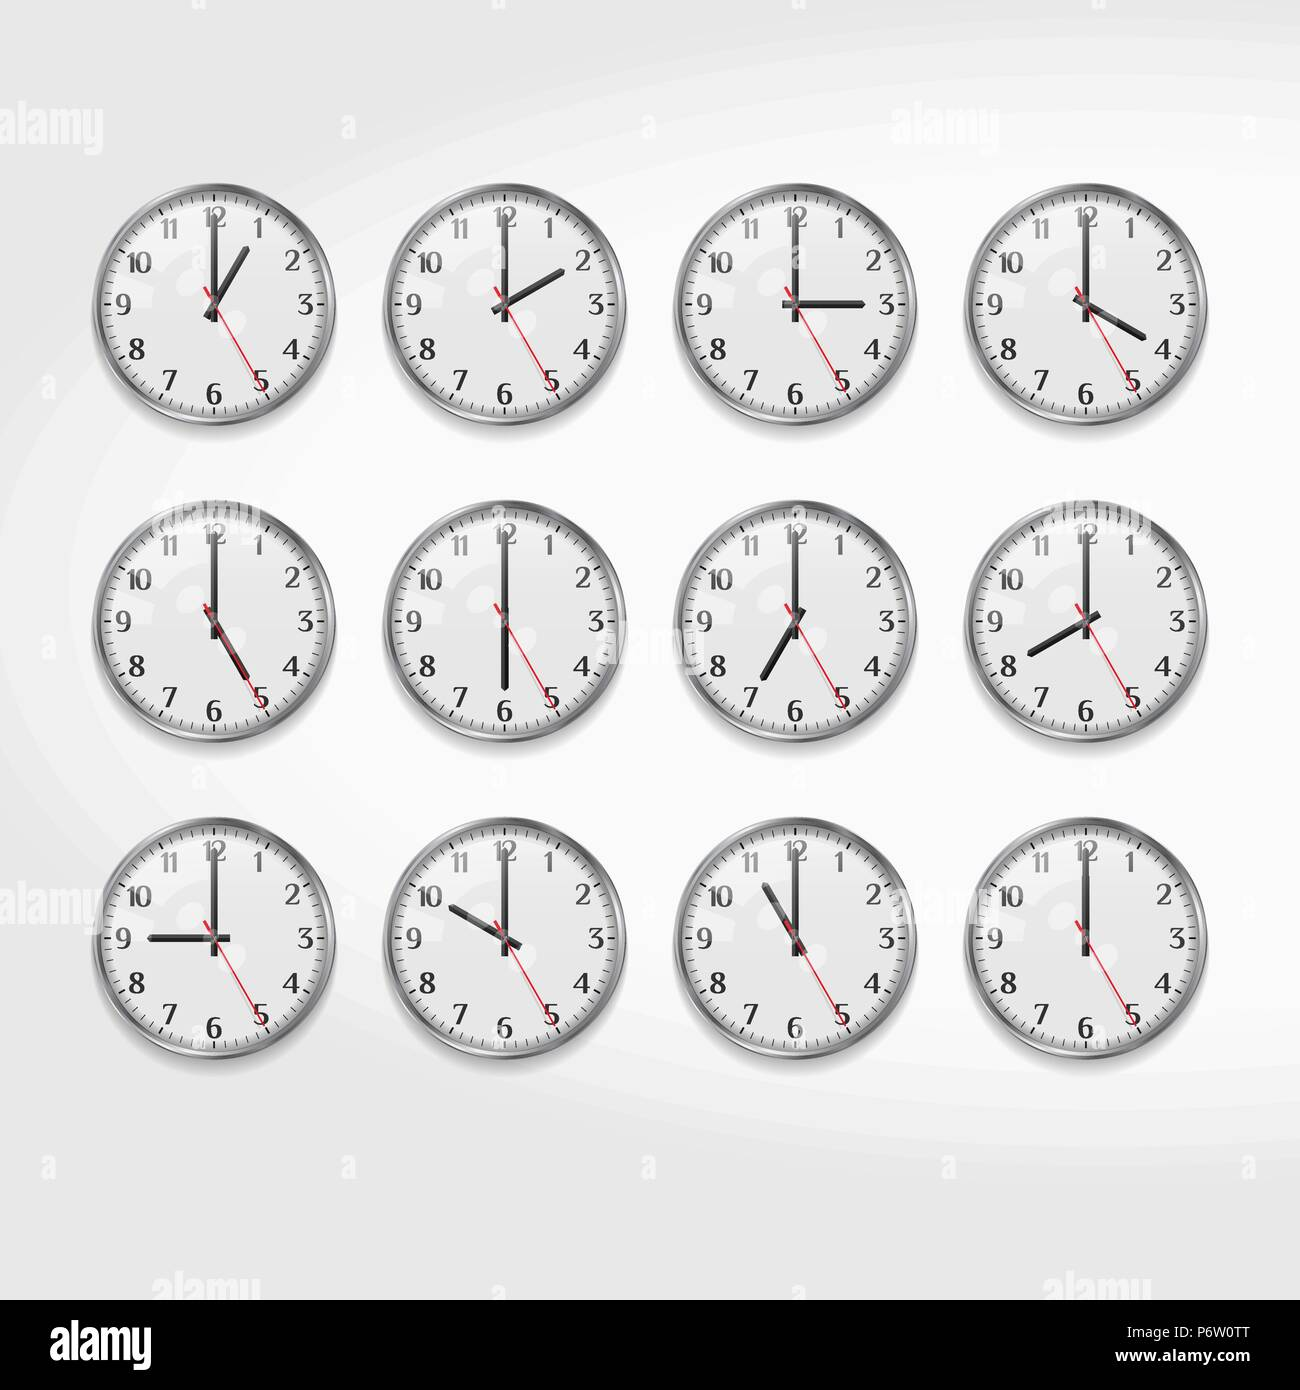 Office Wall Clocks Showing the Times of Day  Round Quartz Analog